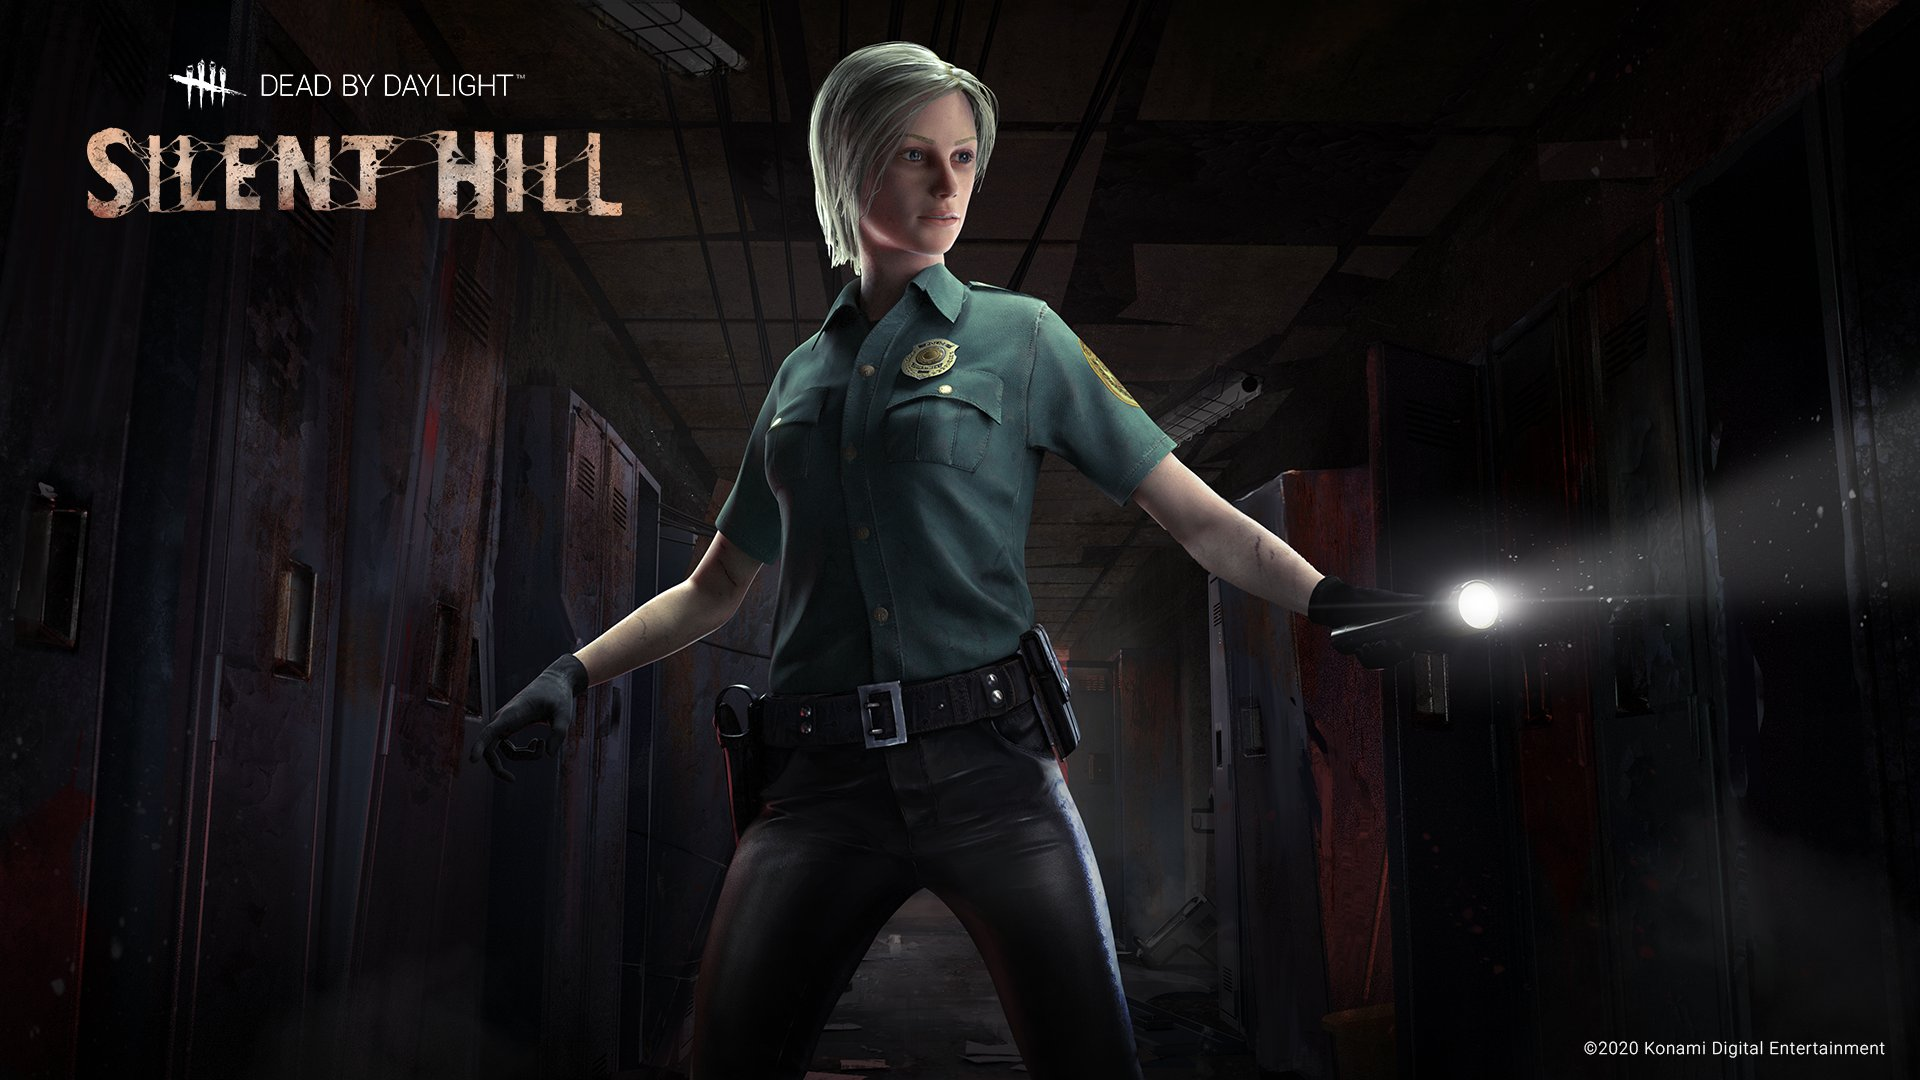 Cybil Bennett out of Silent Hill Dead by Daylight Presenting